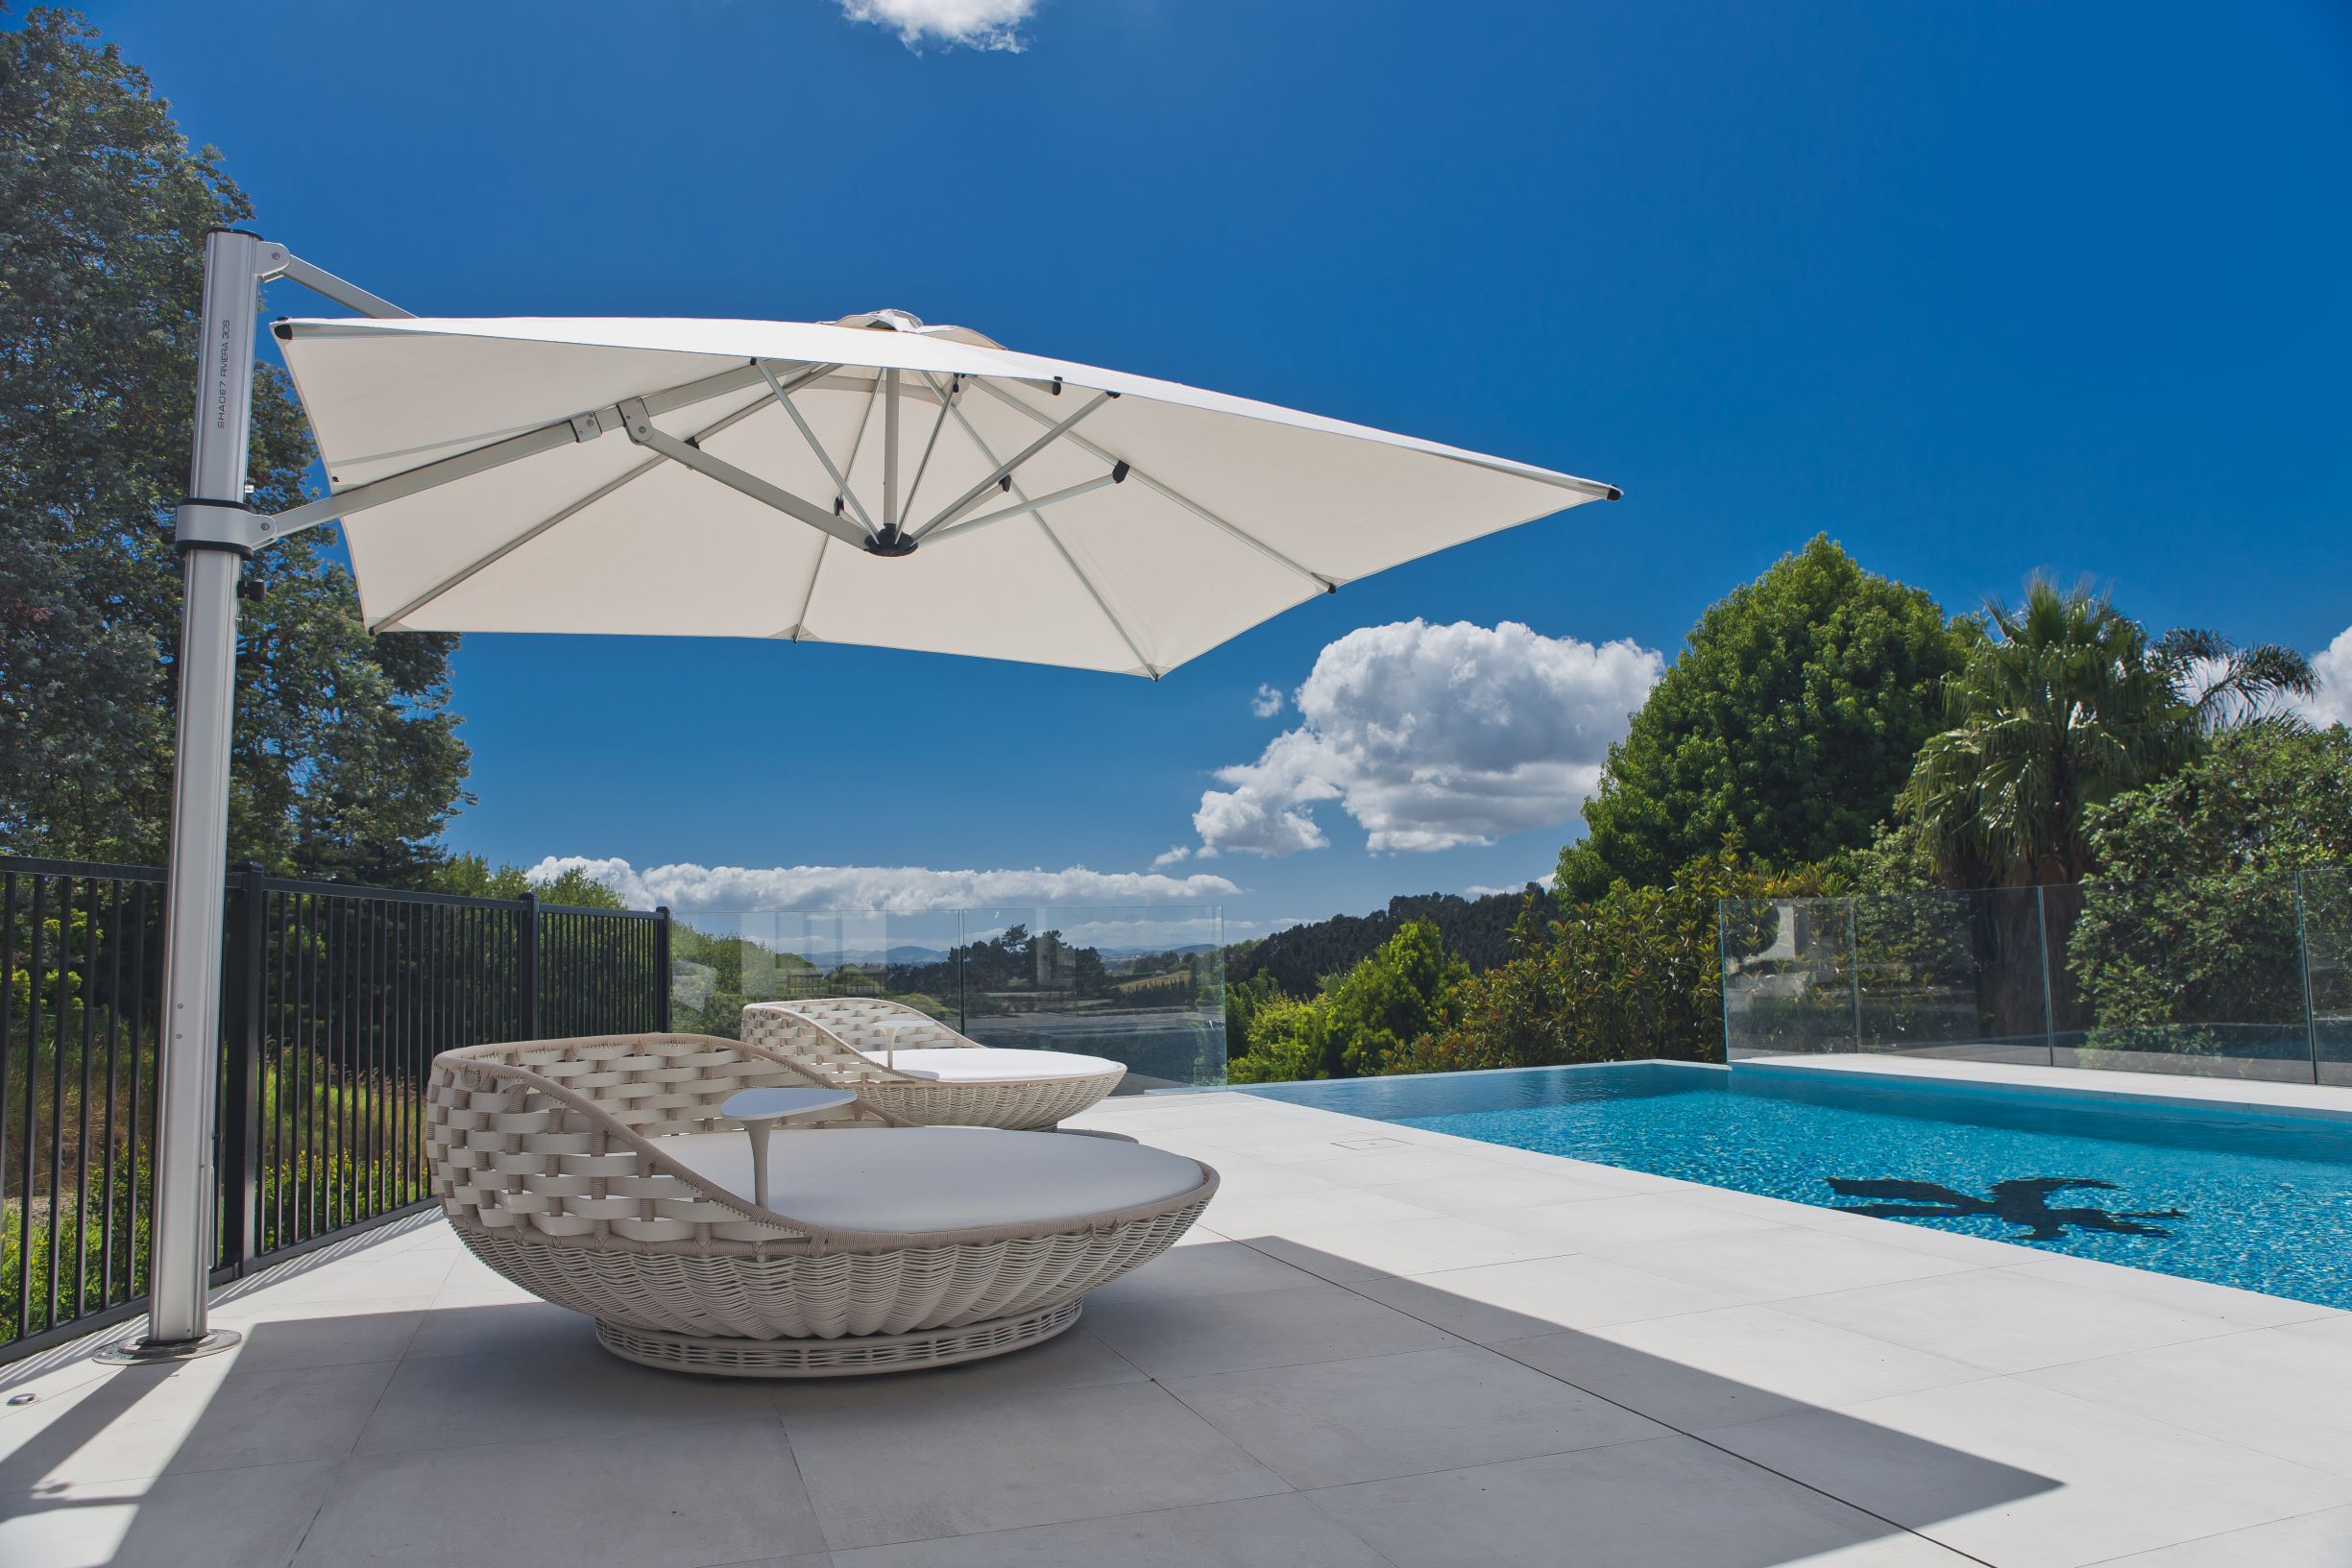 Outdoor cantilever umbrella over daybed